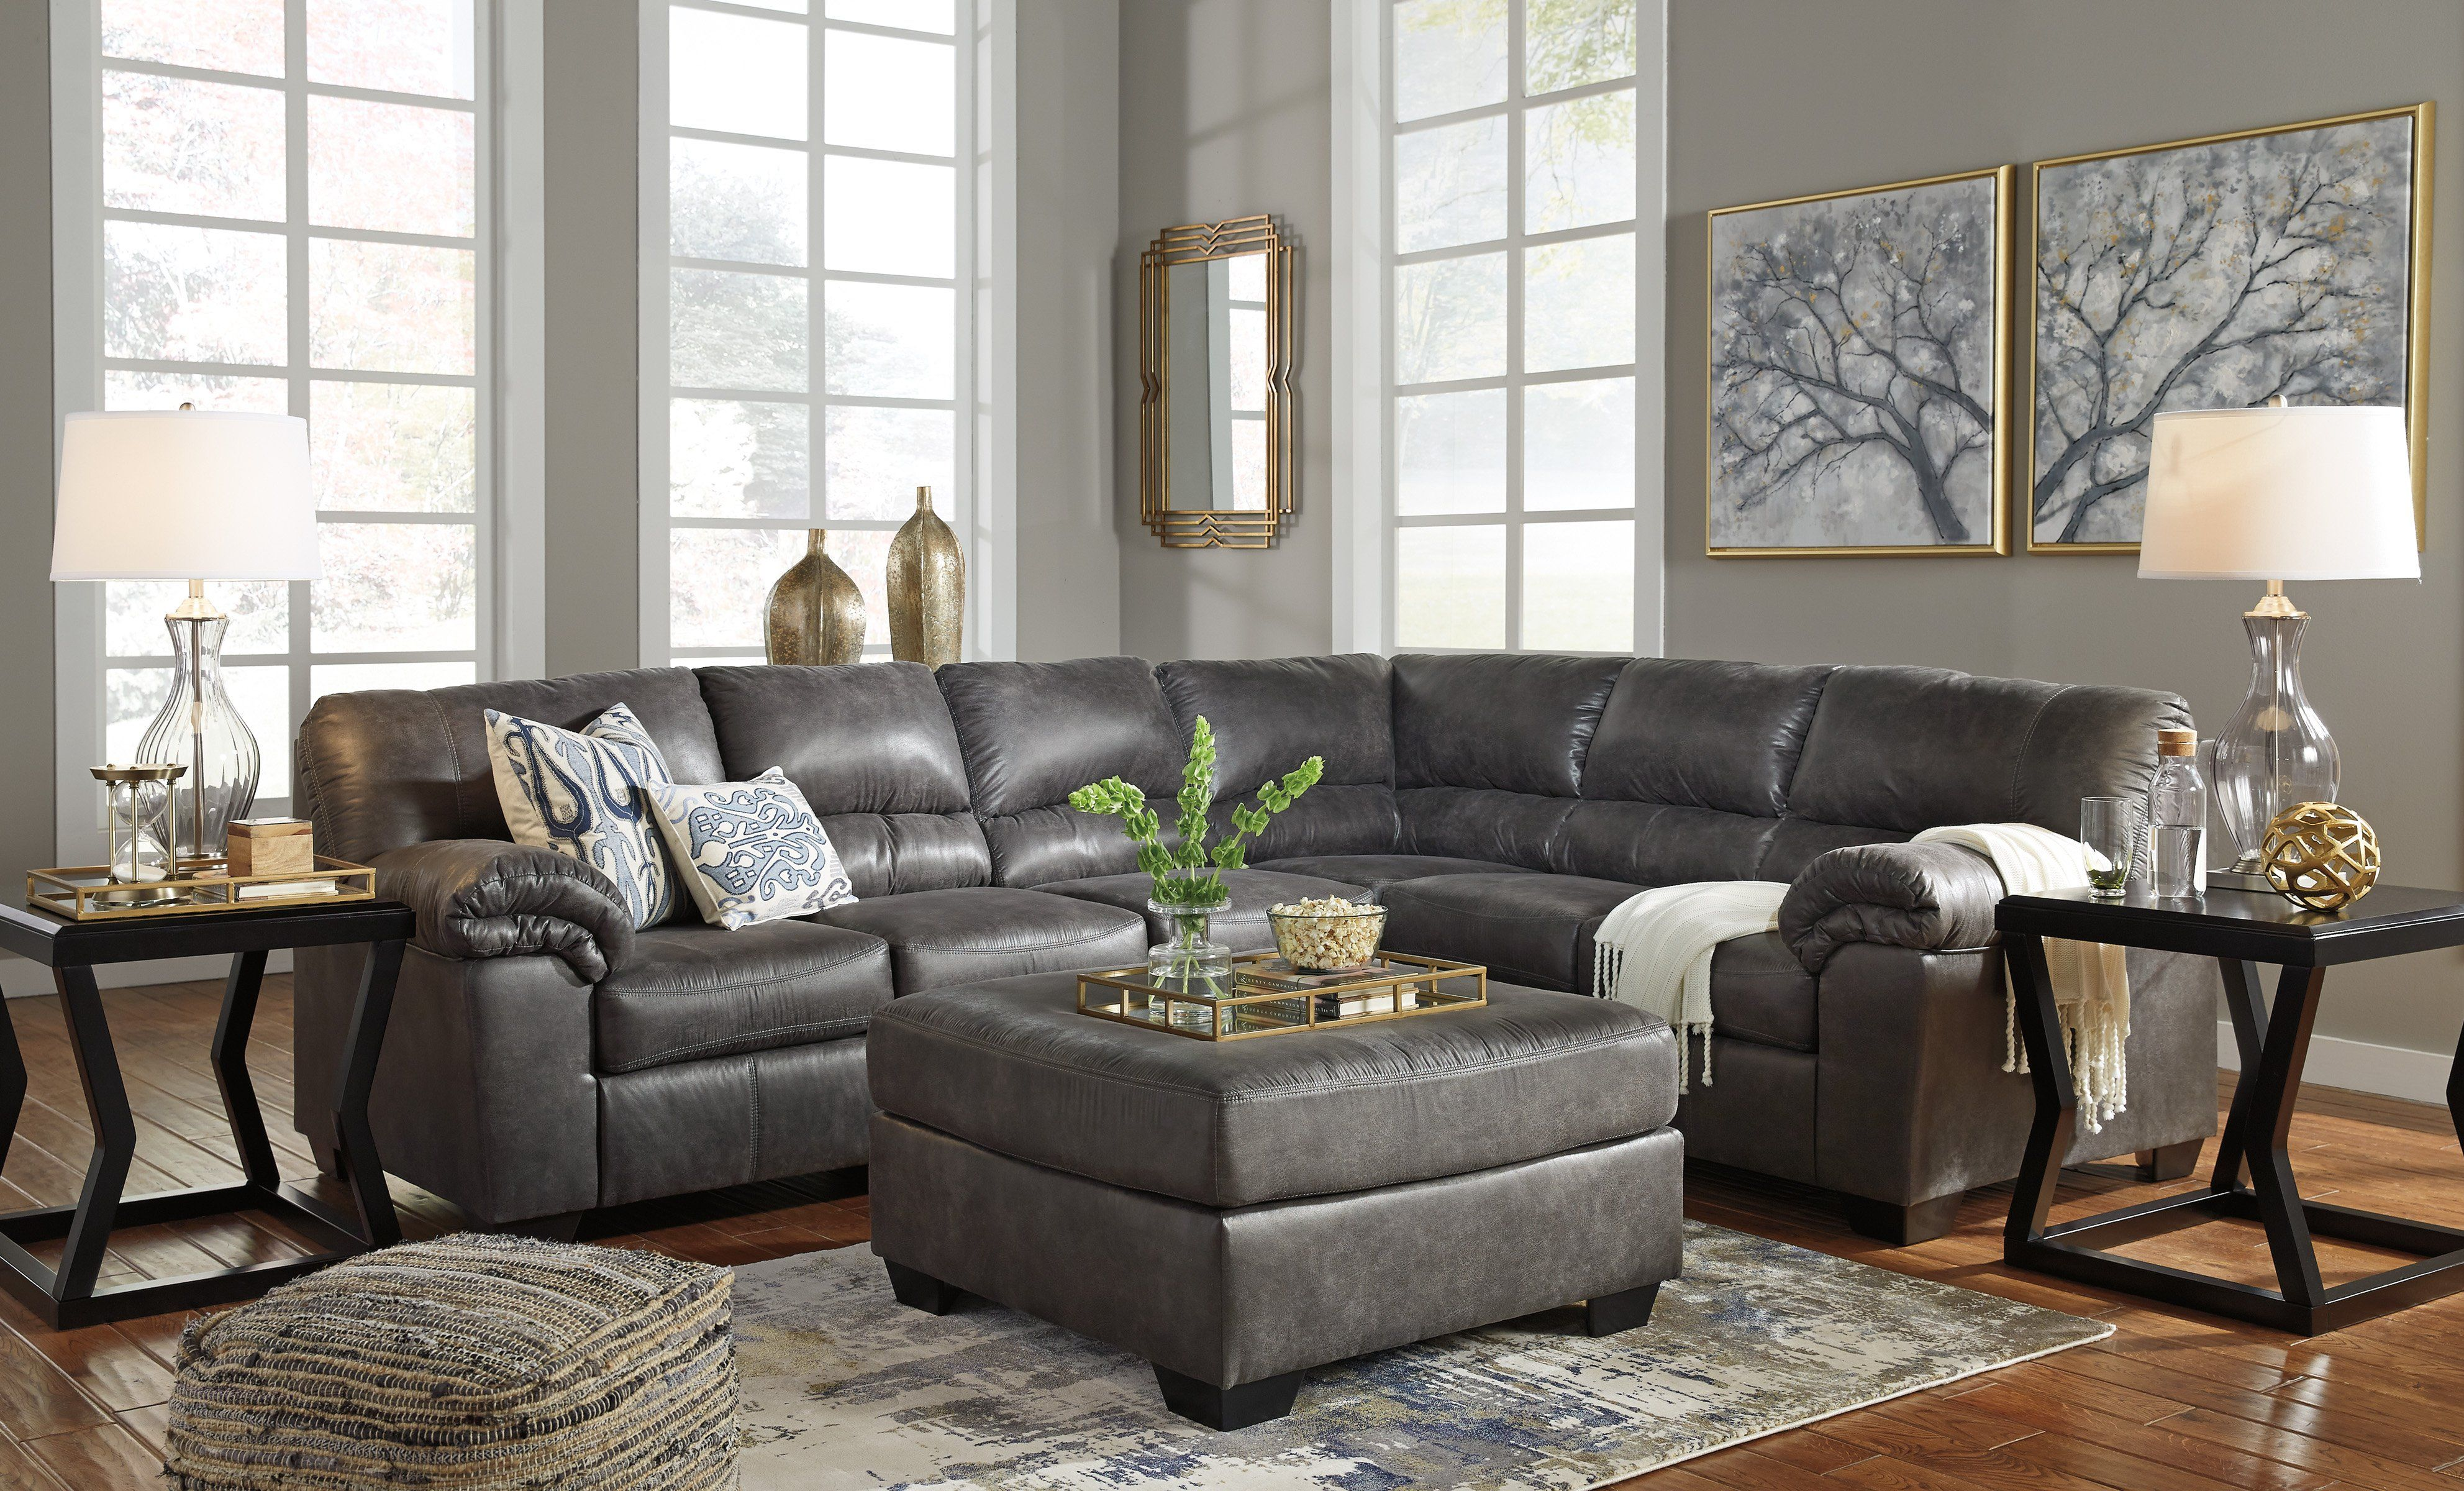 Bladen Slate Sectional Sofa With Ottoman By Ashley Couch With Ottoman Furniture Living Room Sets